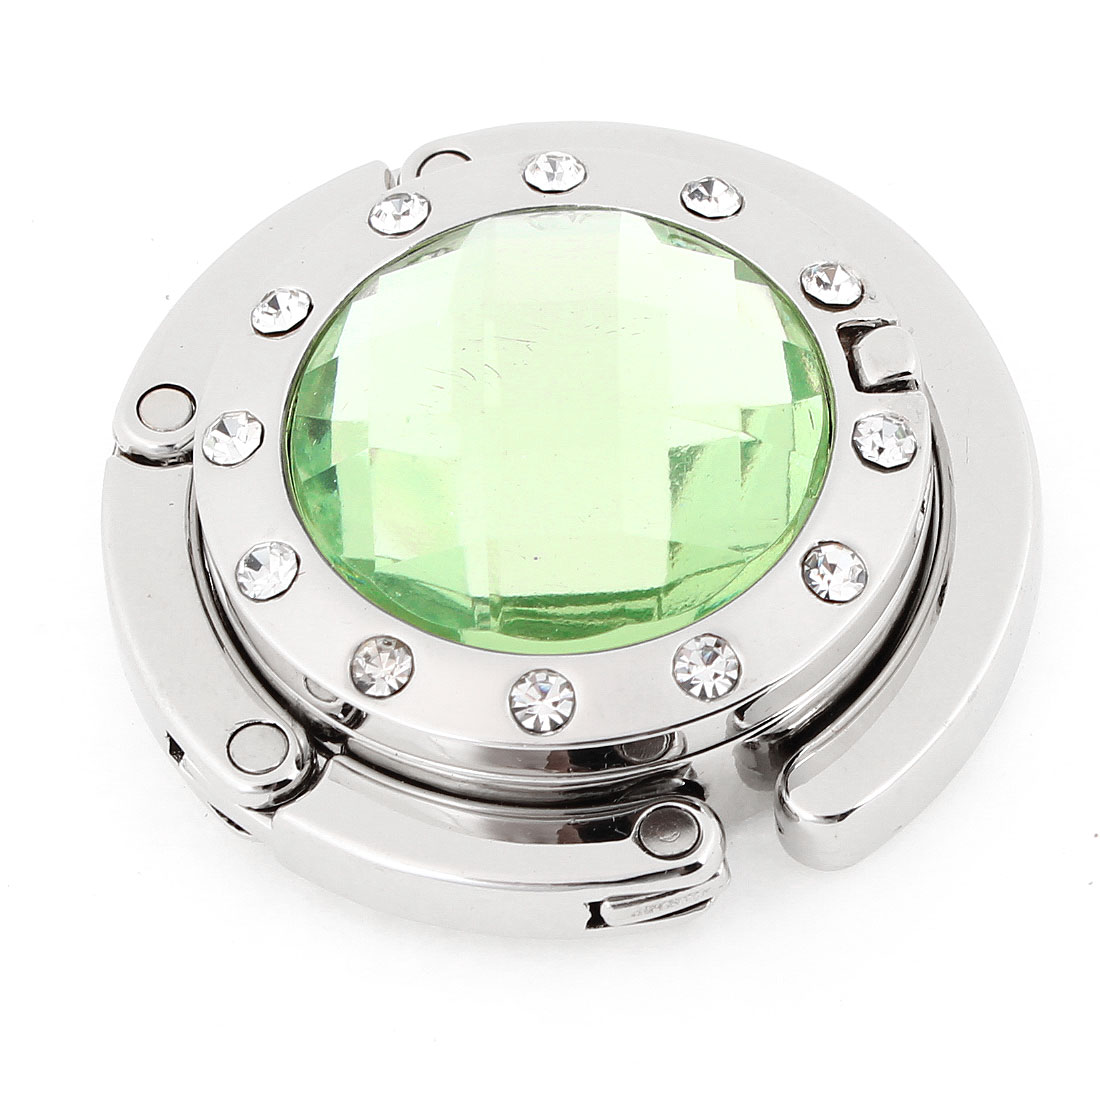 Lady Light Green Plastic Crystal Decor Rubber Base Handbag Hook Holder w Mirror